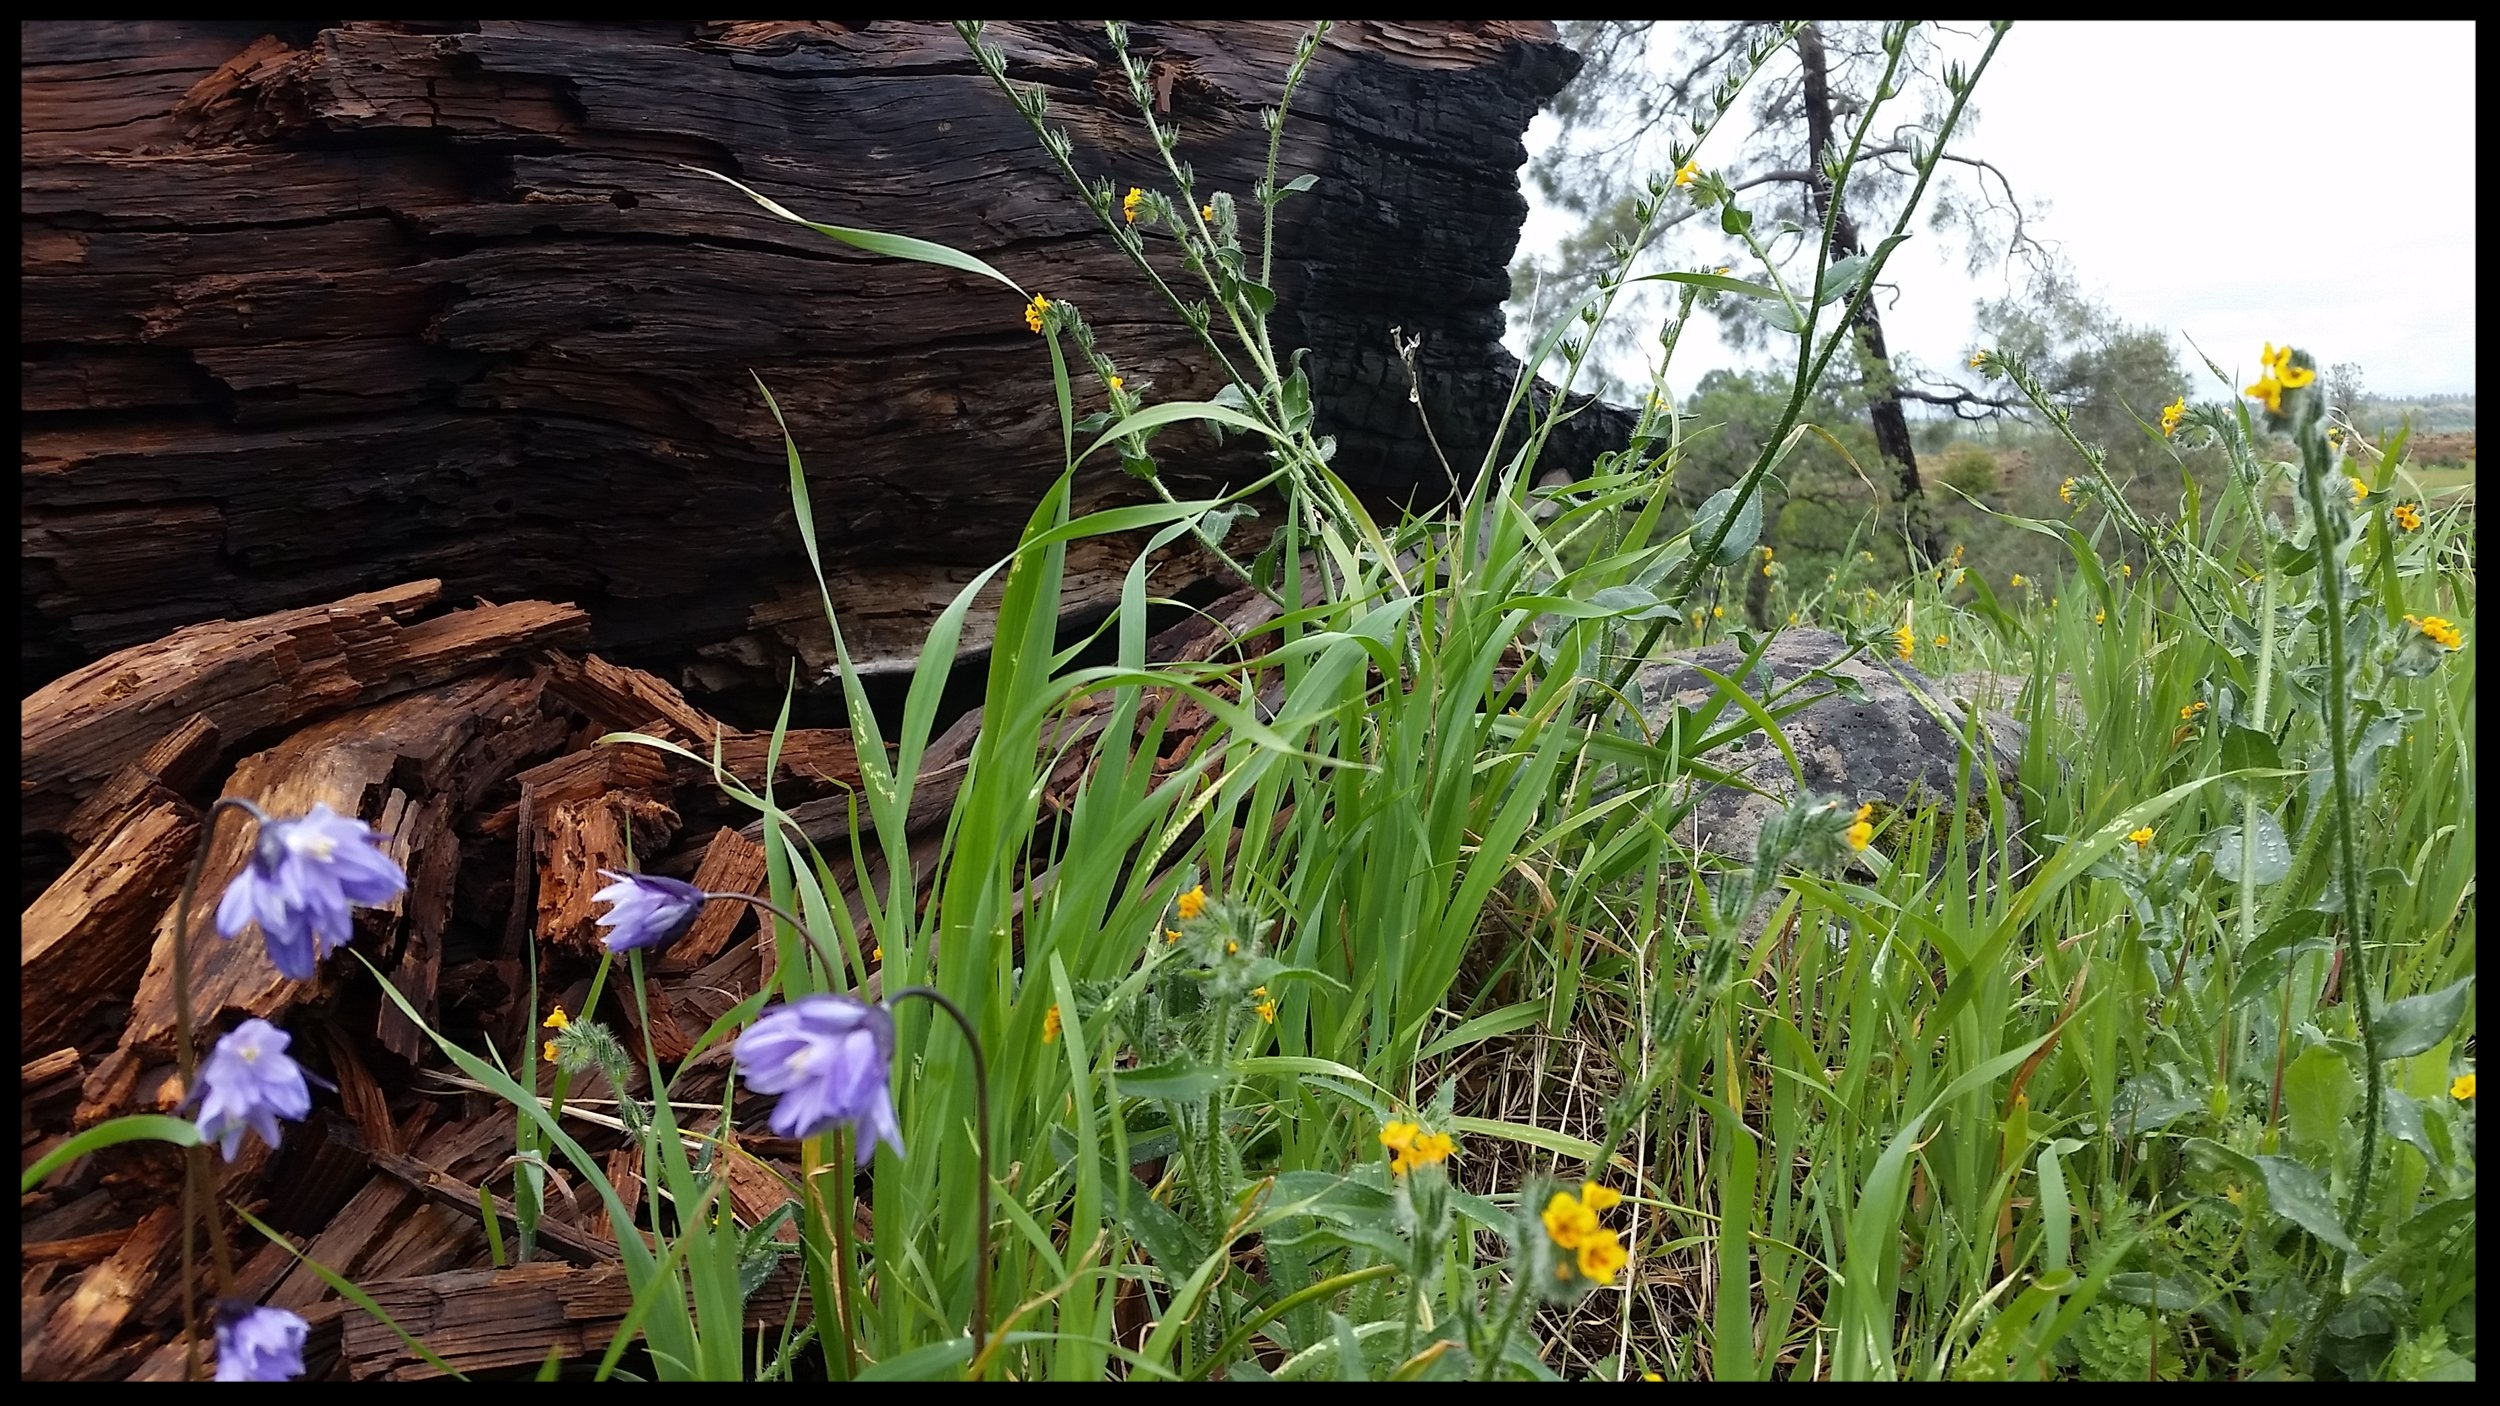 Fire scars in Bidwell Park tell a story of a changing landscape